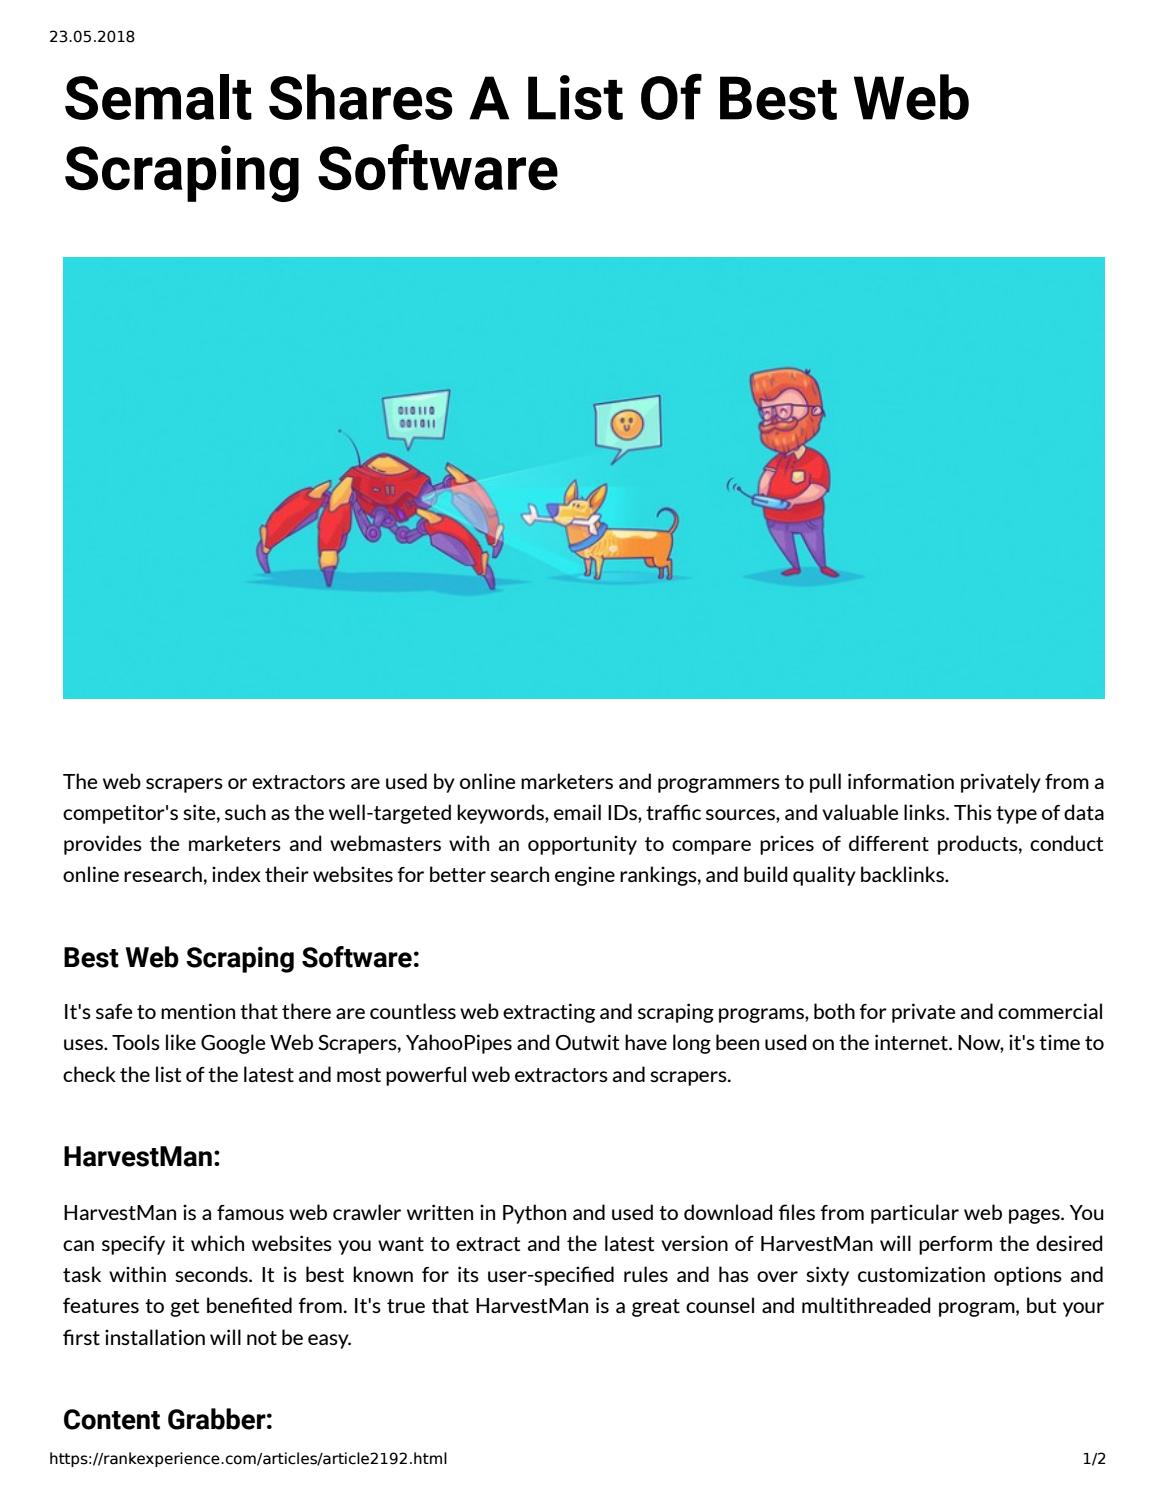 Semalt Shares A List Of Best Web Scraping Software by